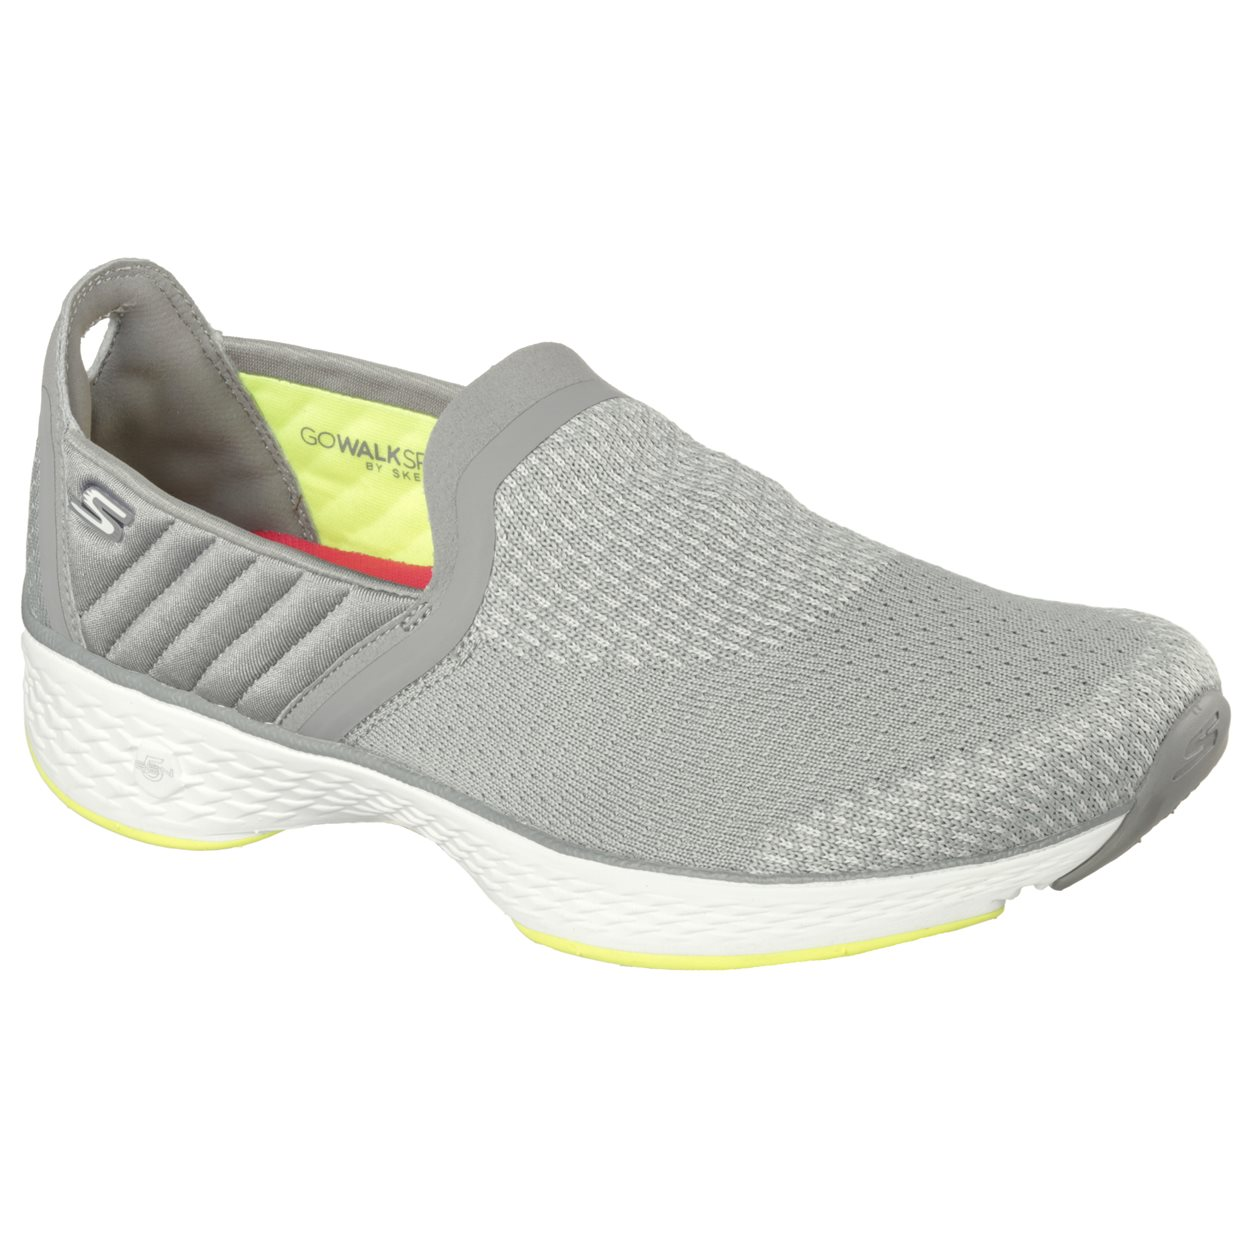 Skechers Women's Go Walk Sport Slip-On Shoe